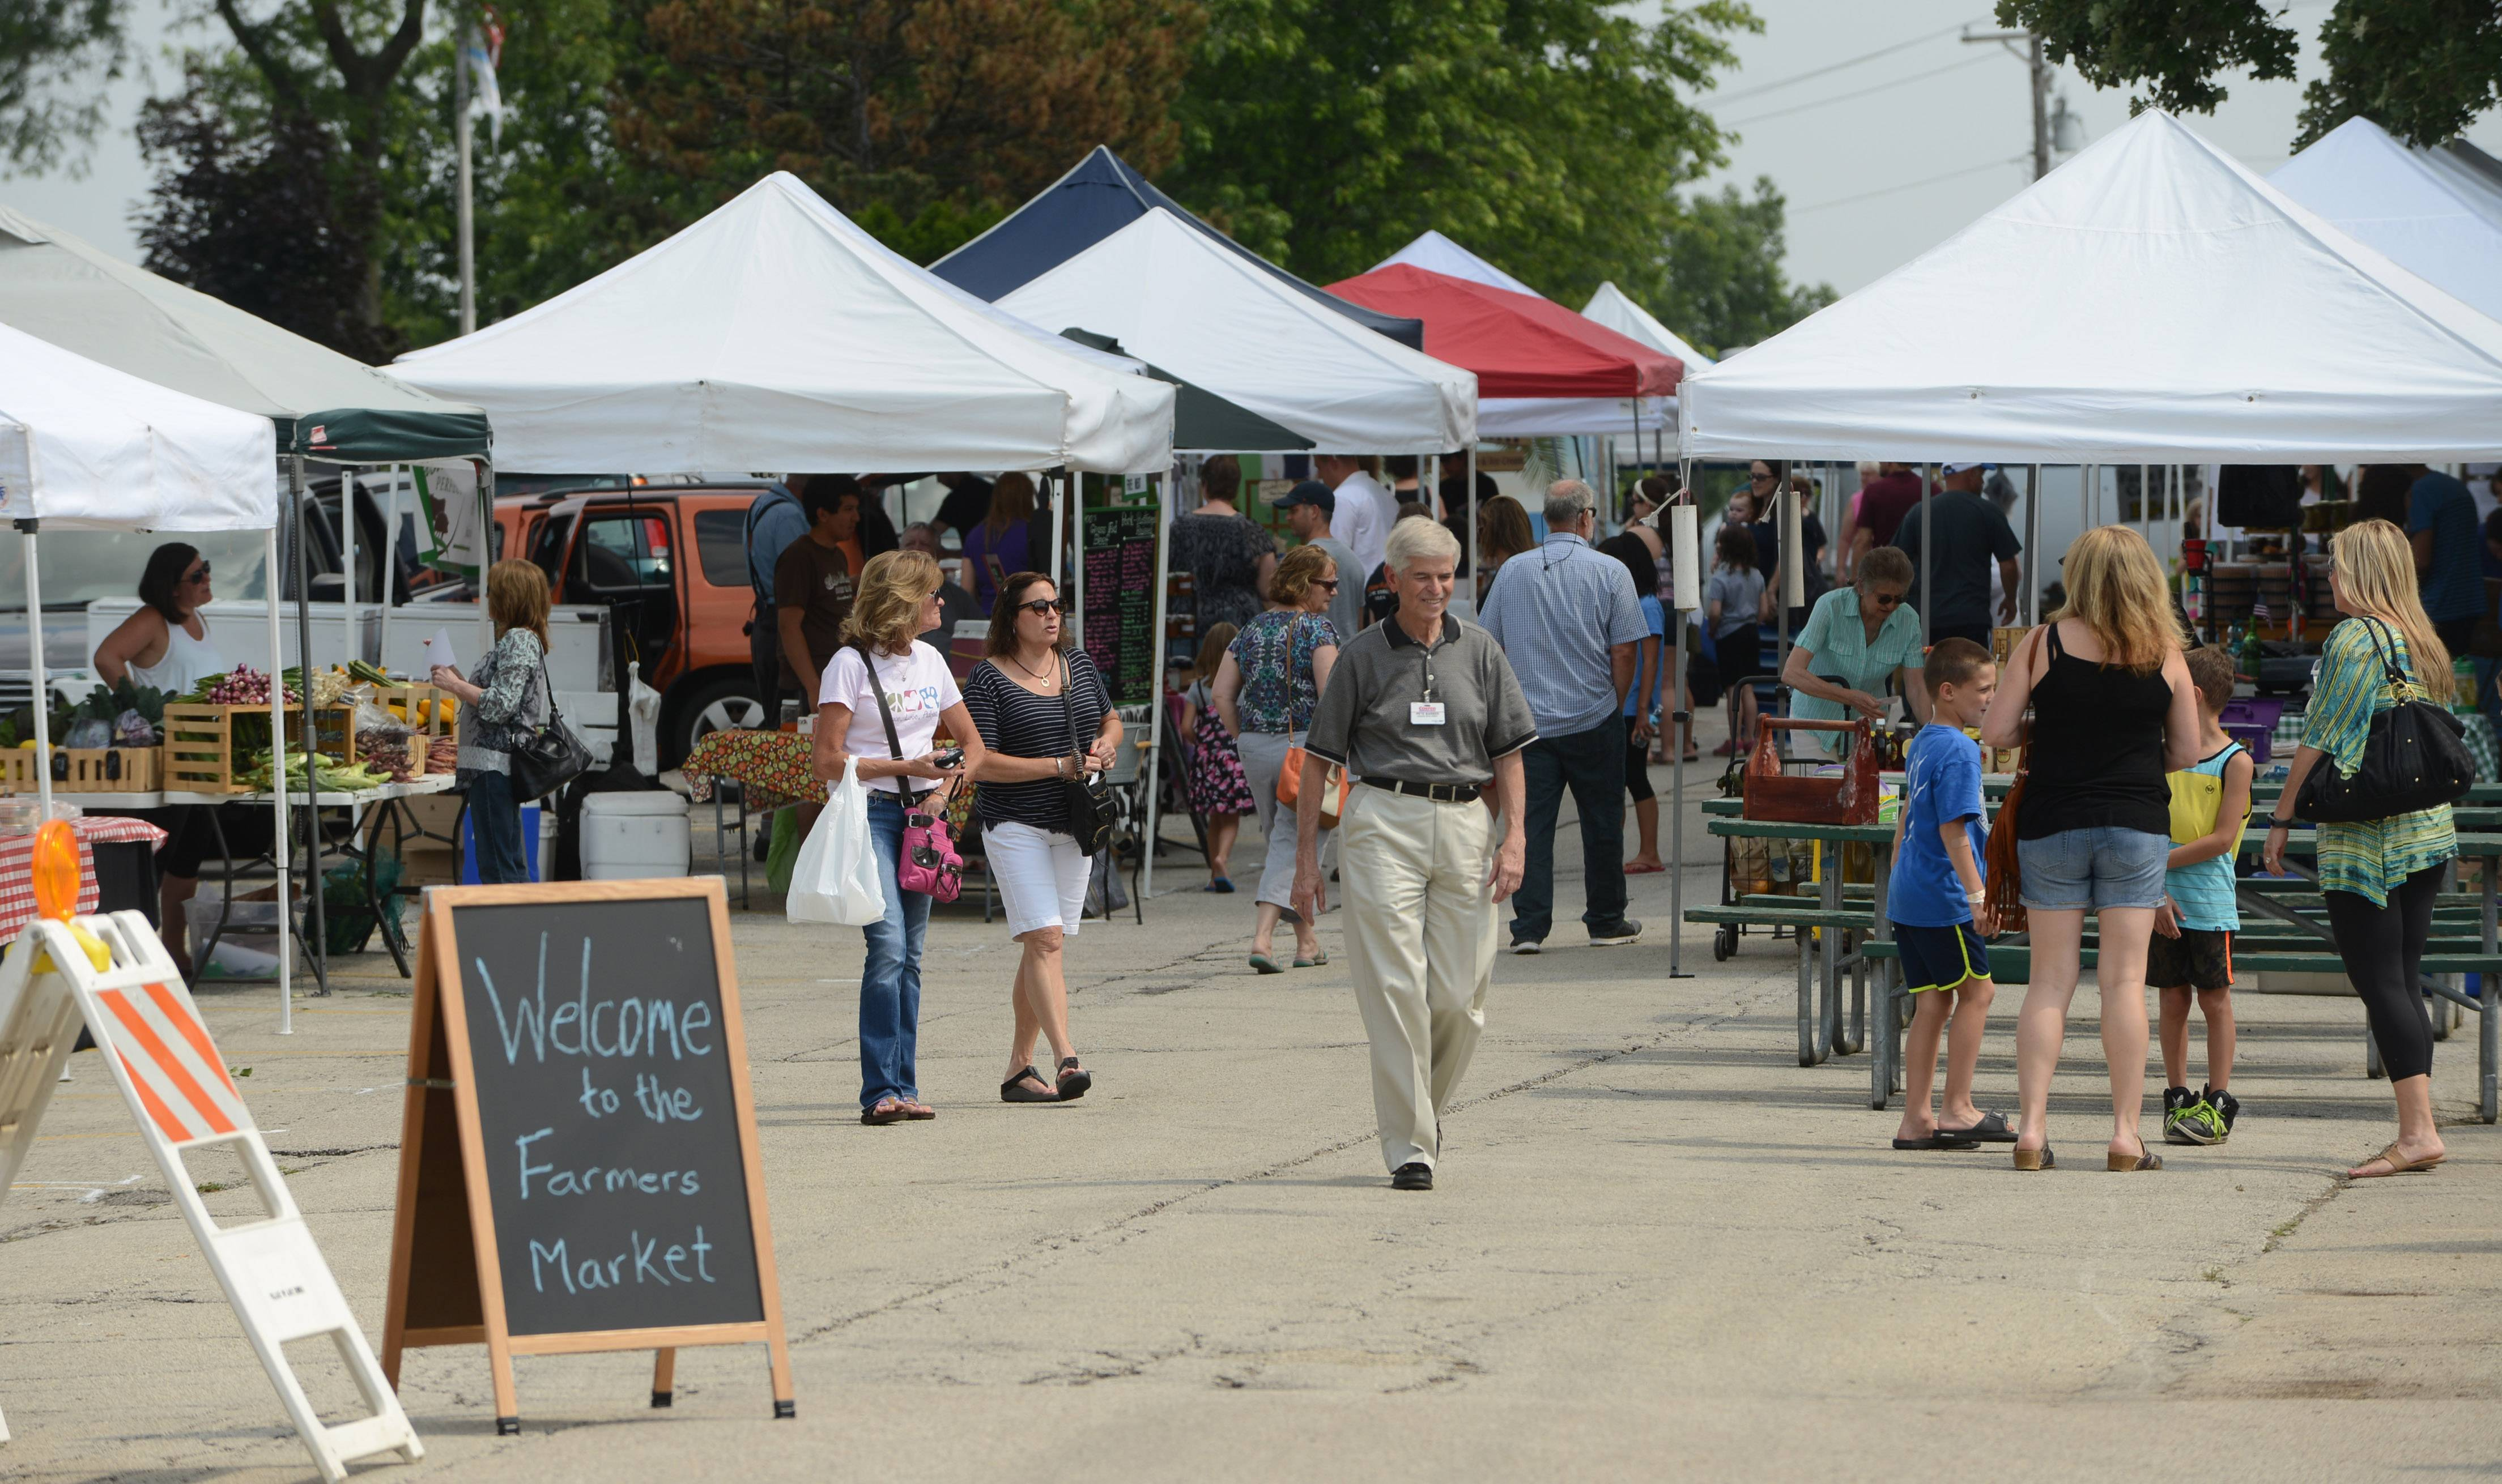 Lake Zurich's Farmers Market will be open from 3-7 p.m. Fridays, June 3 to Sept. 9 in Paulus Park.